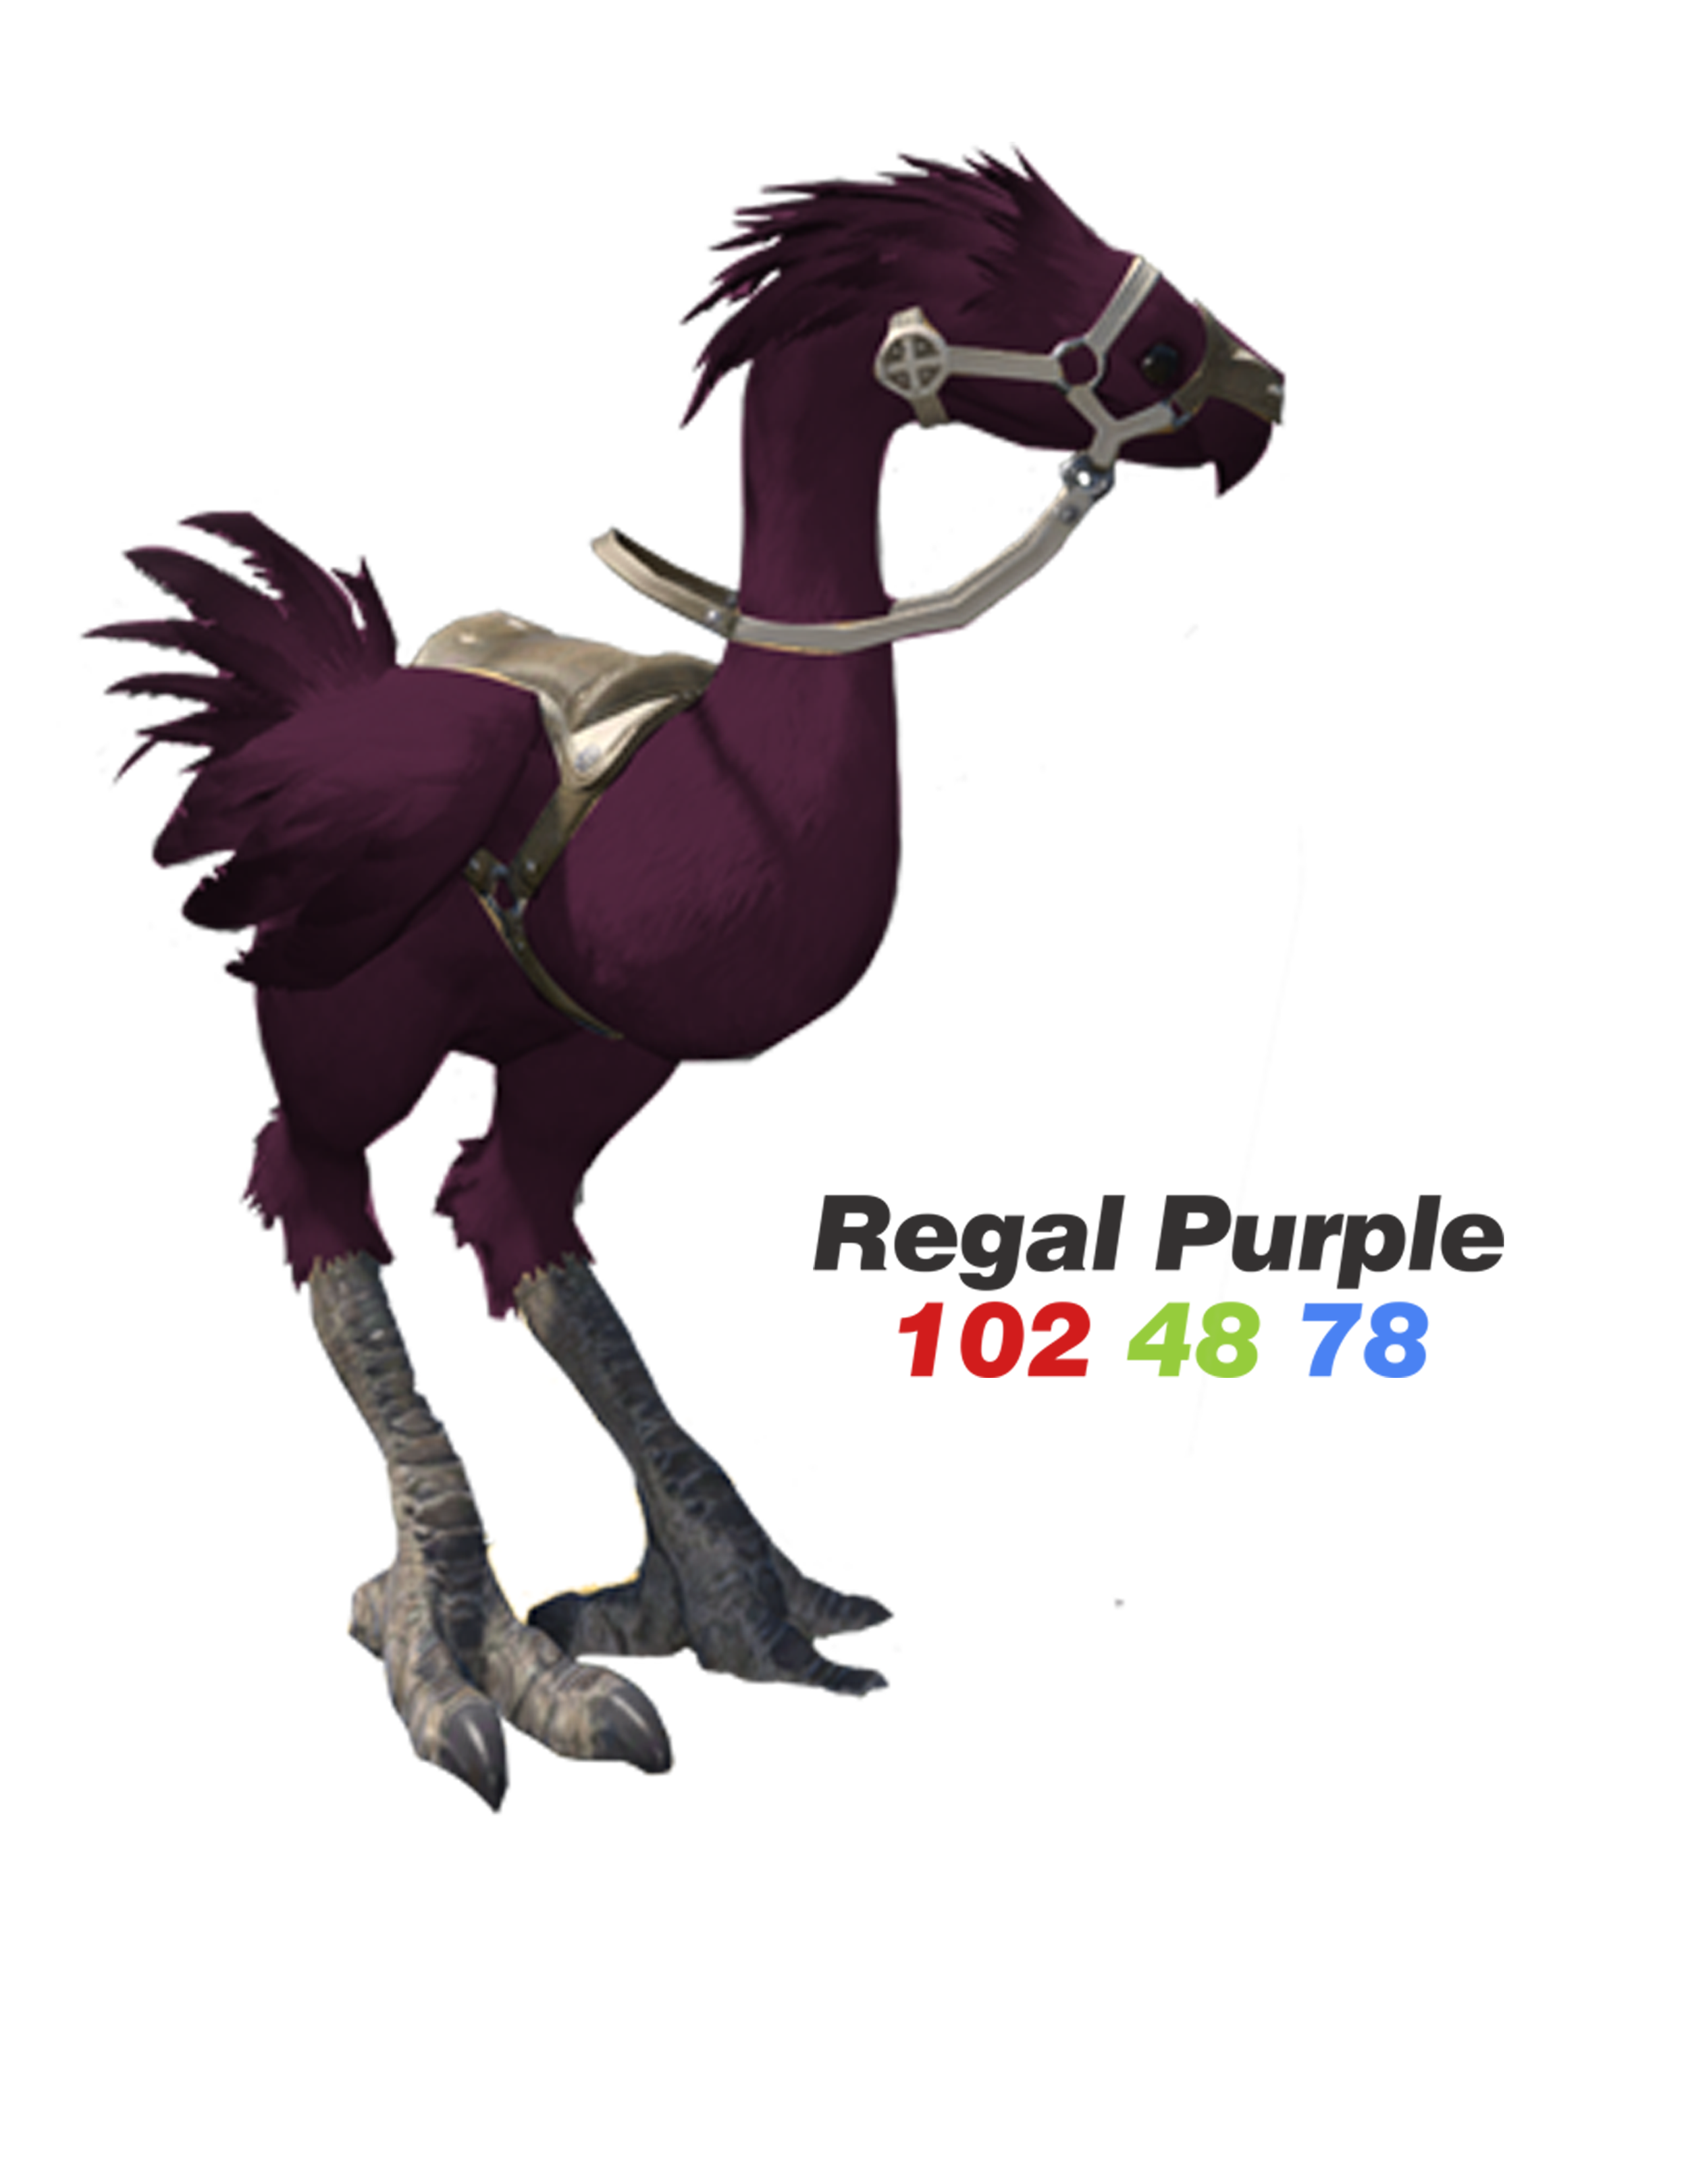 09Regal.png